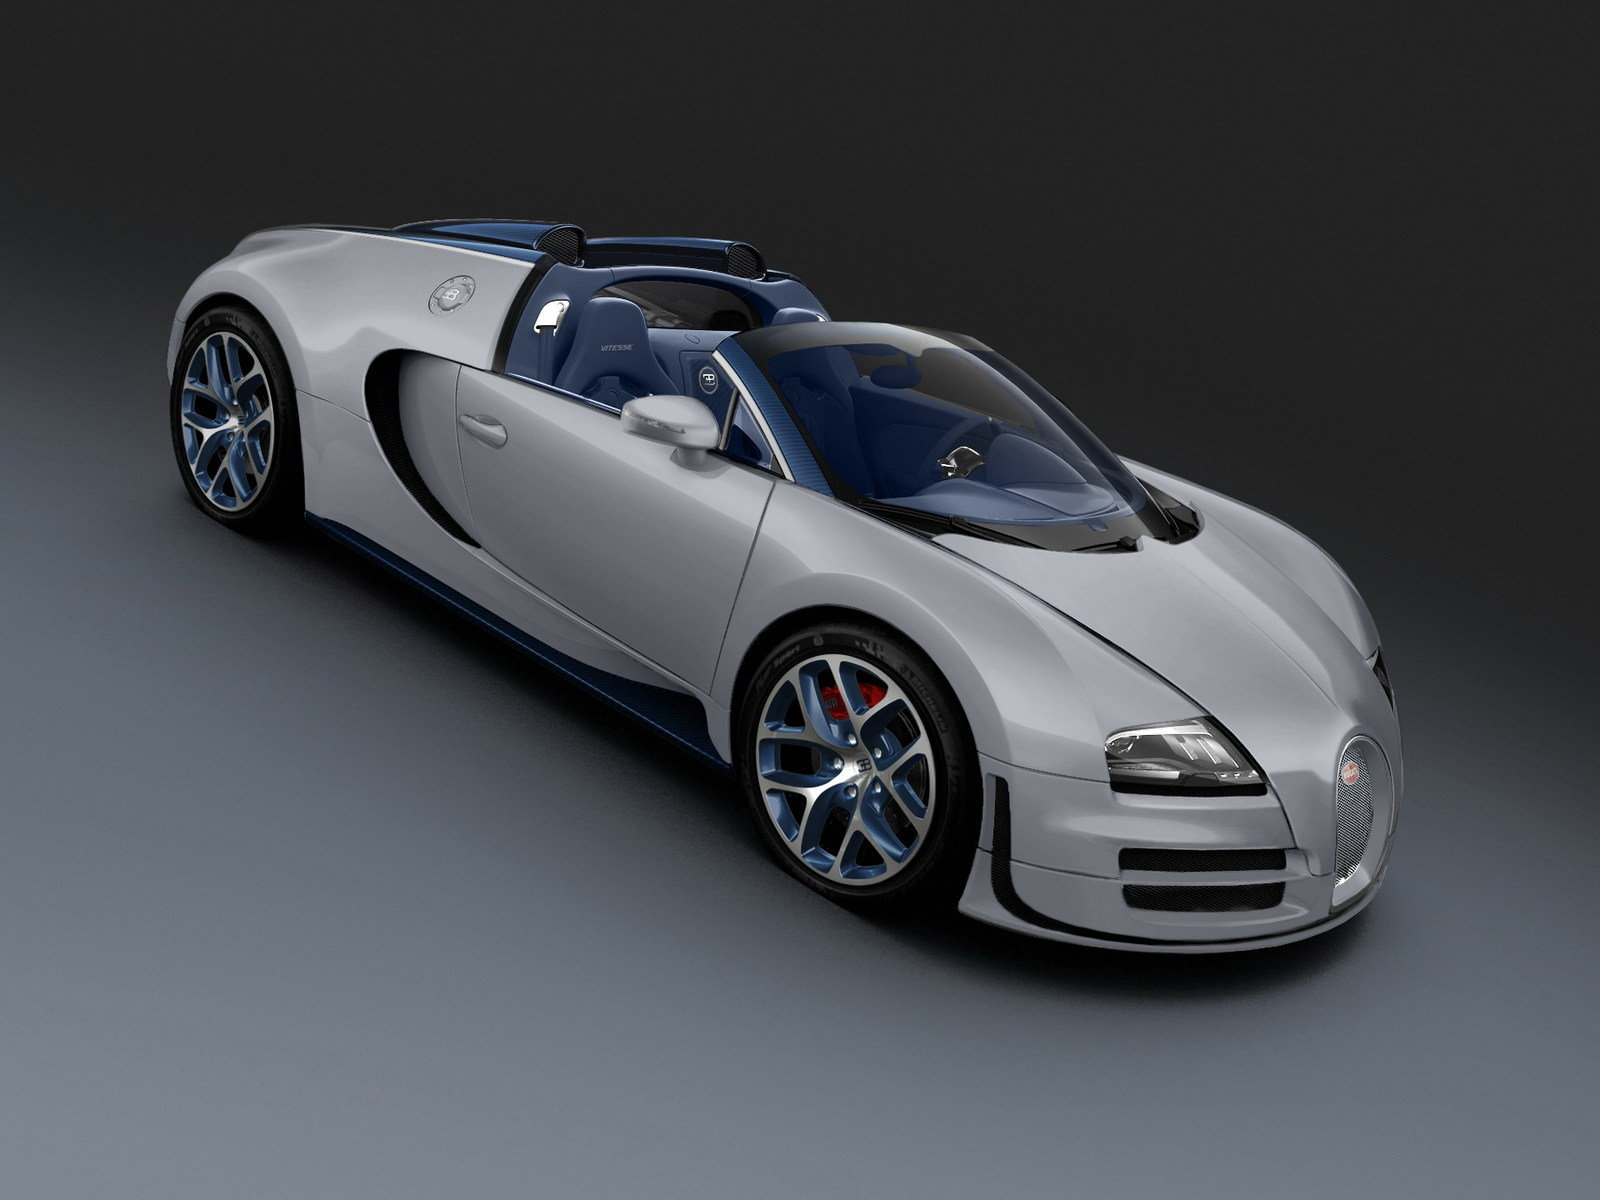 2012 bugatti veyron grand sport vitesse gris rafale picture 478834 car review top speed. Black Bedroom Furniture Sets. Home Design Ideas